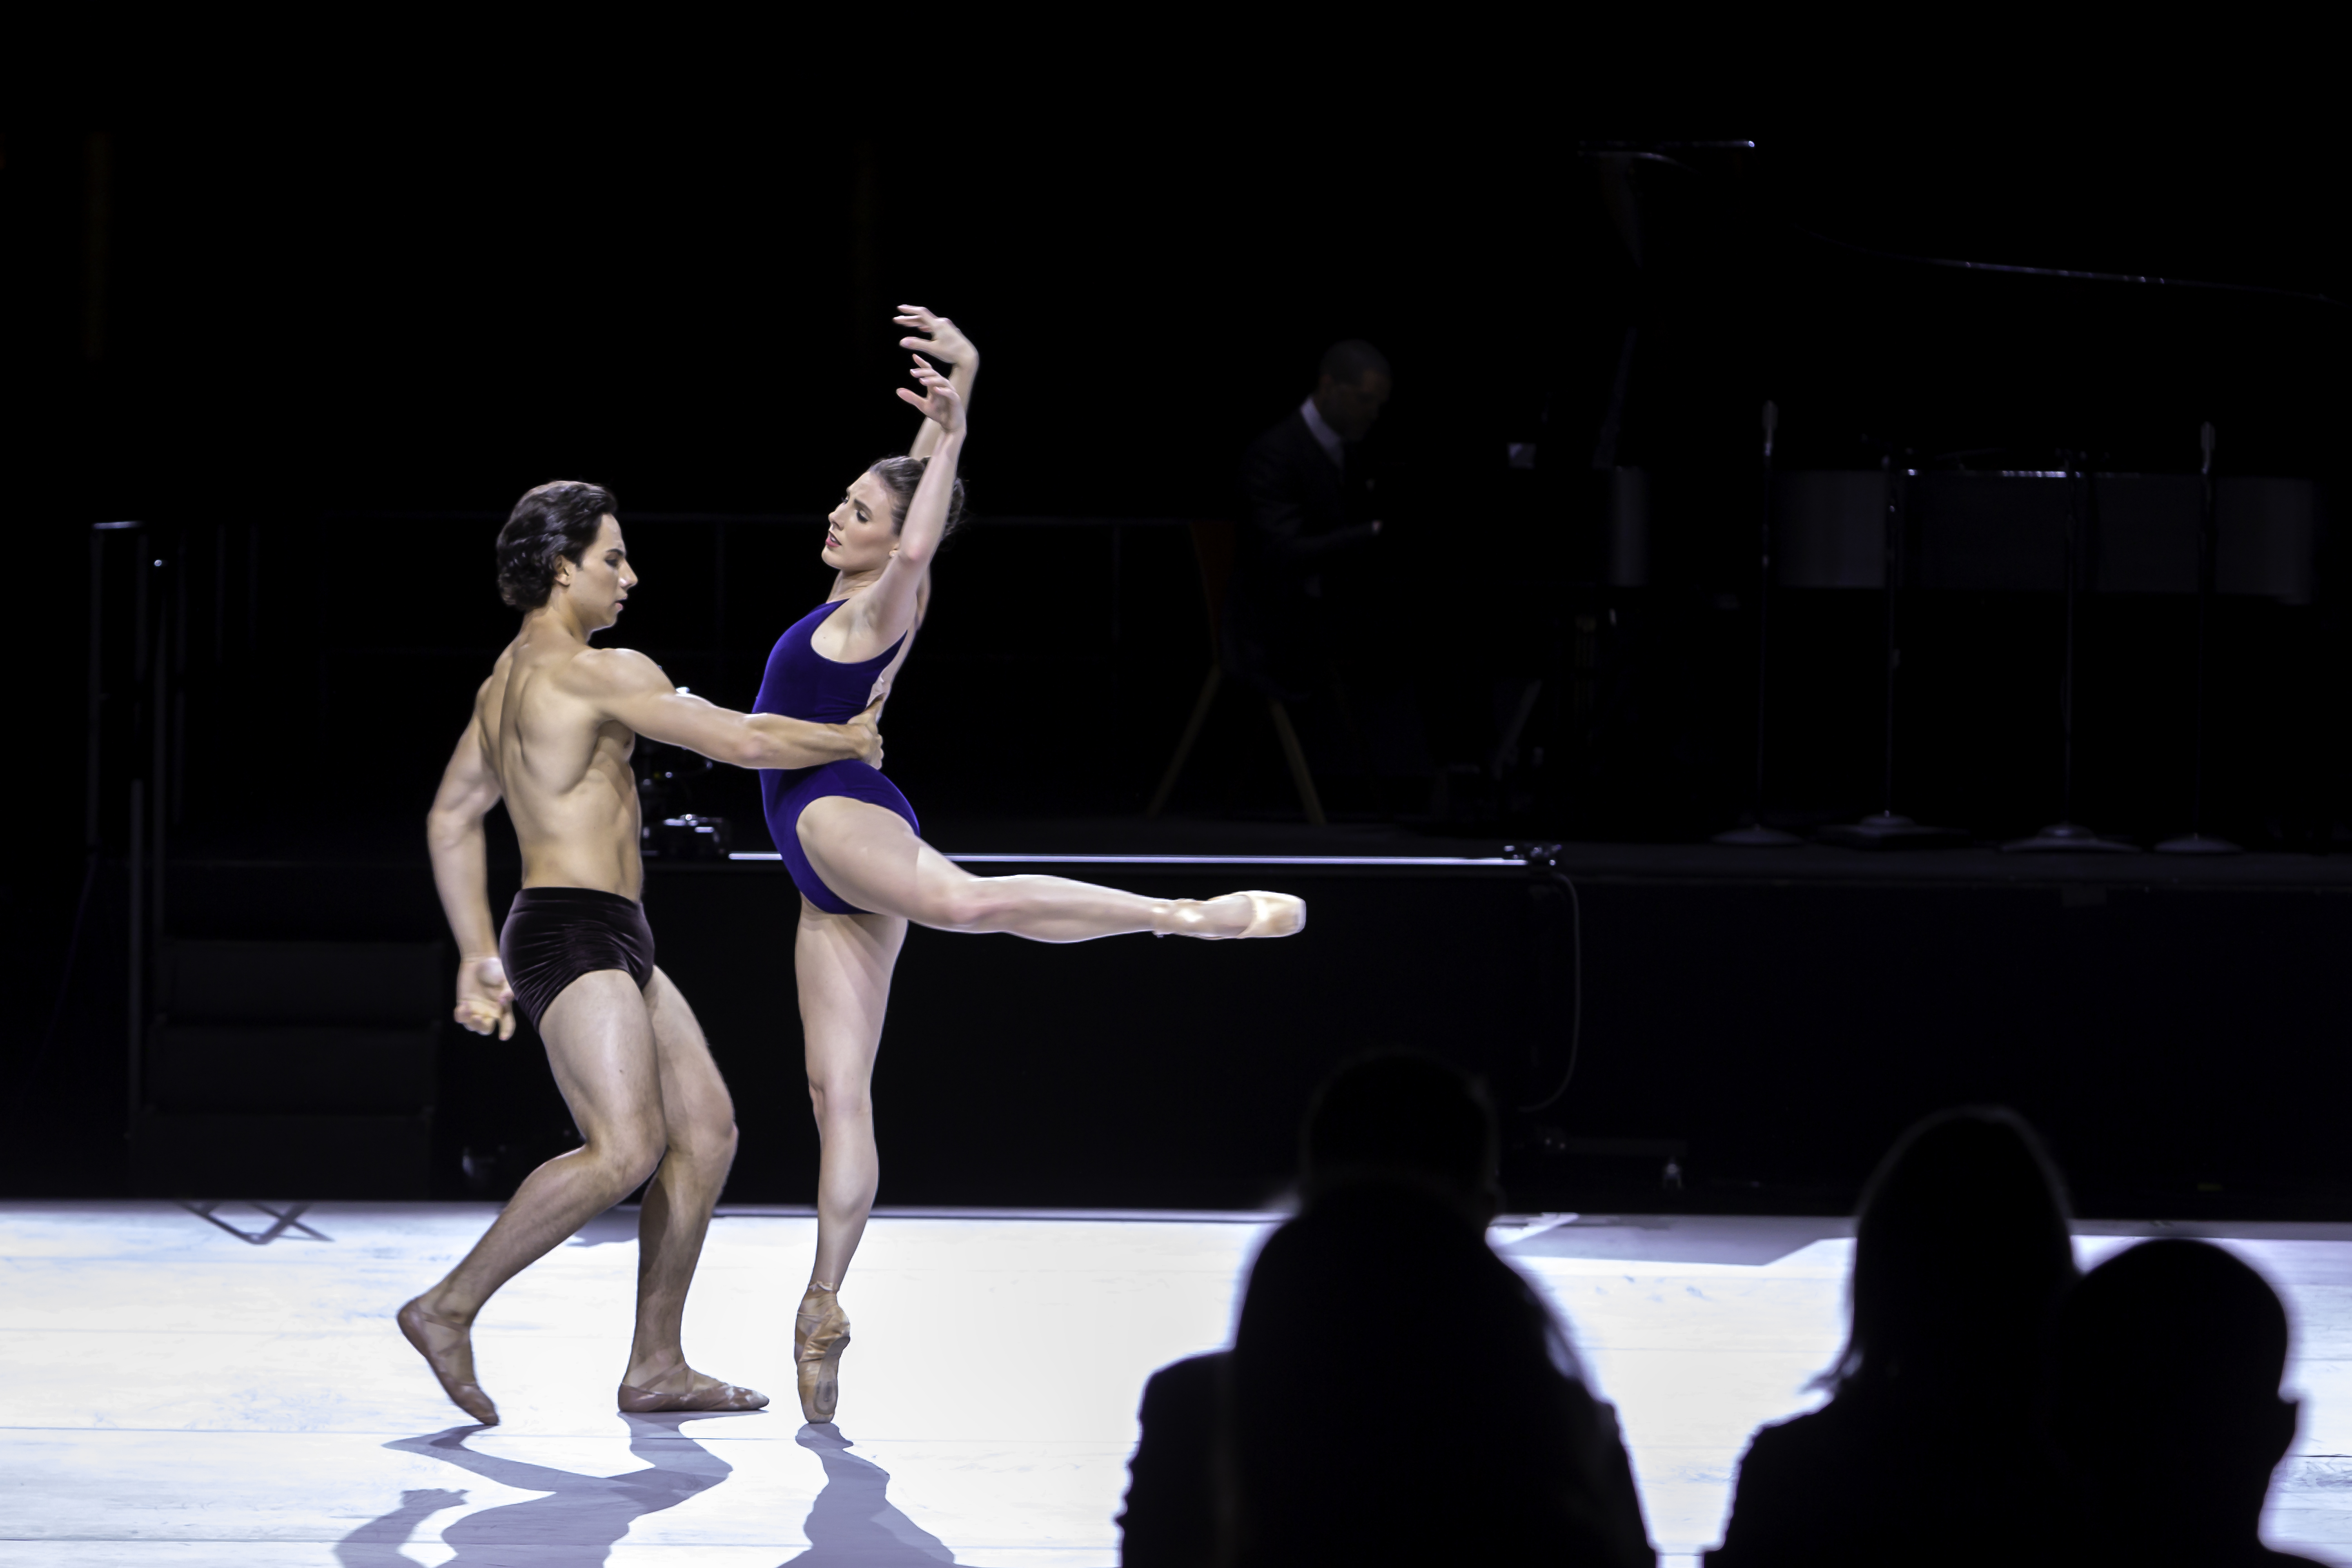 """Roman Mejia and Tiler Peck performing Alonzo King's Swift Arrow on stage at the Opera House during """"An Evening of Jazz and Dance"""" at The Kennedy Center."""